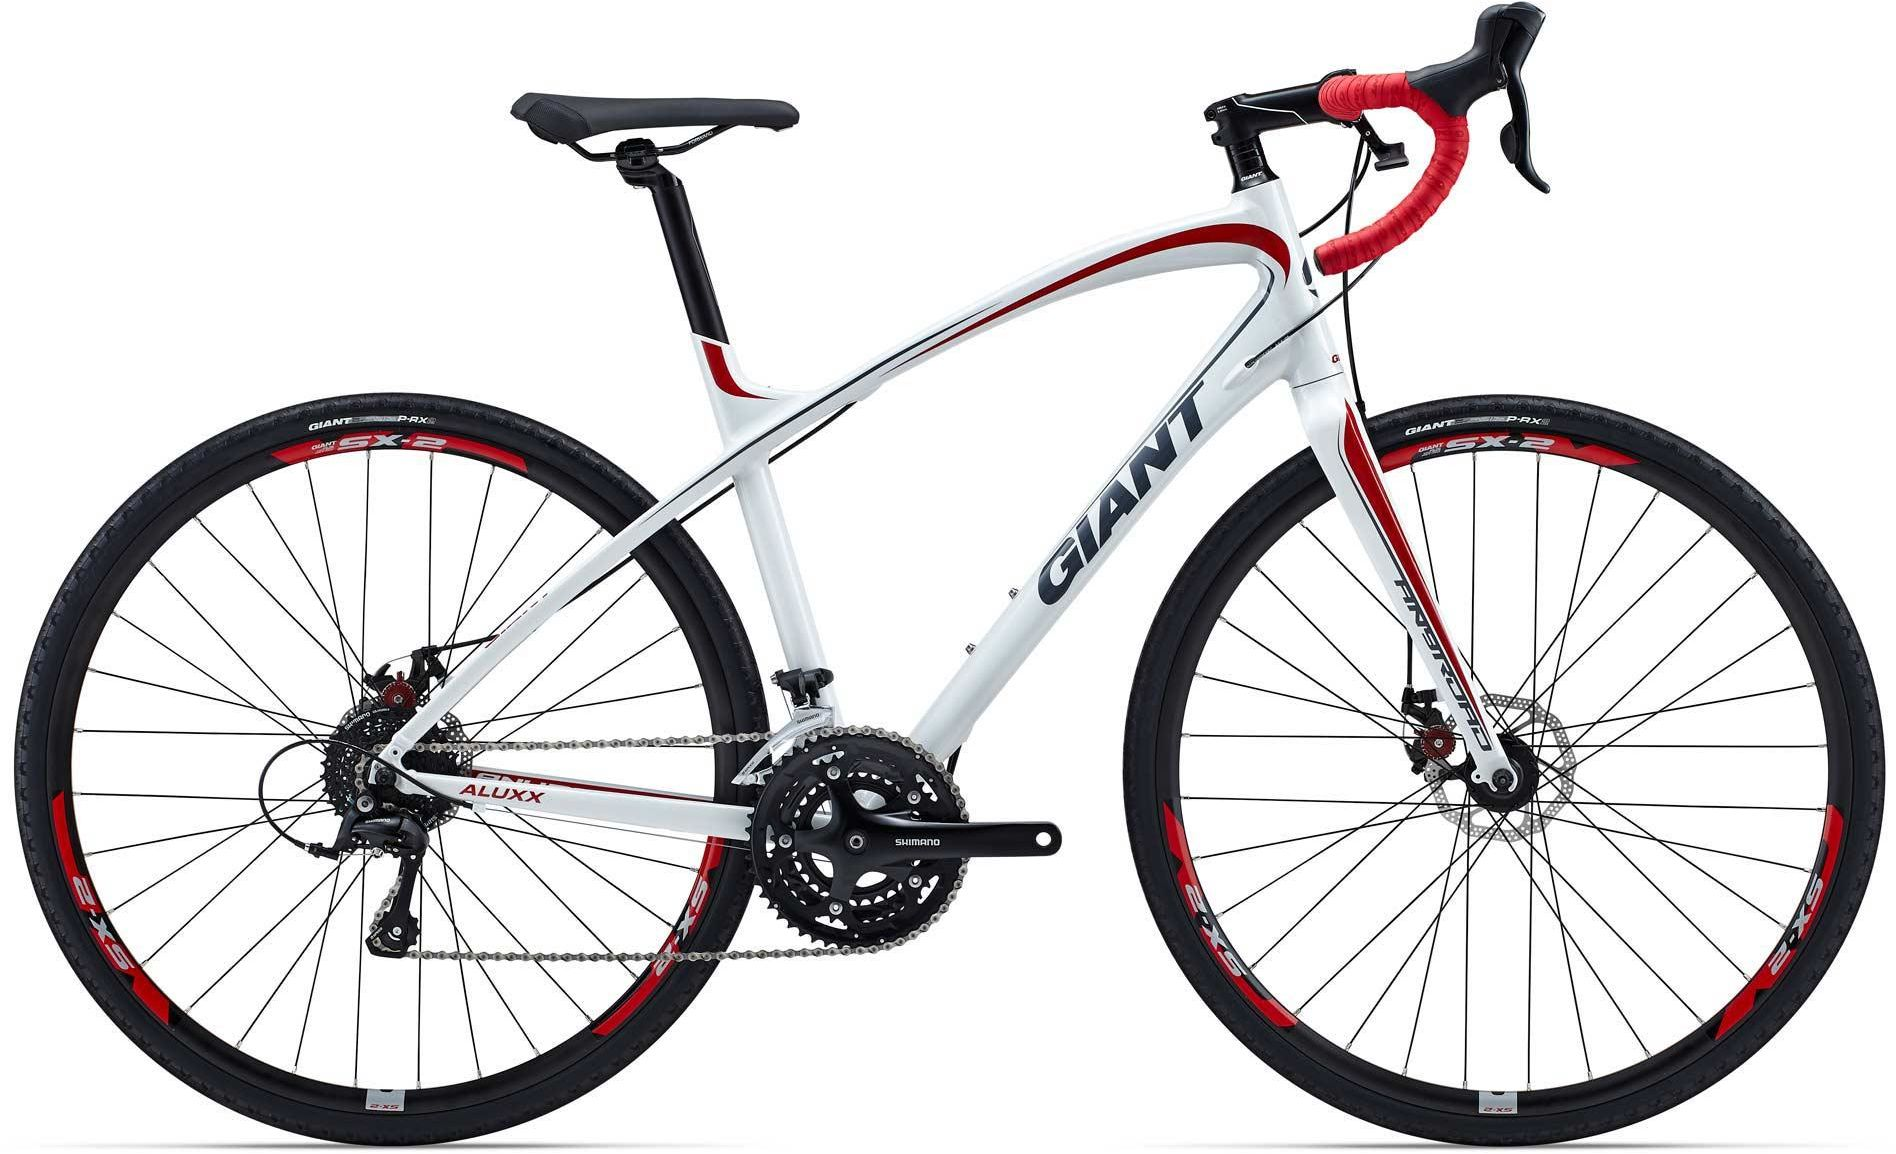 Giant Anyroad 2 2015 Review The Bike List